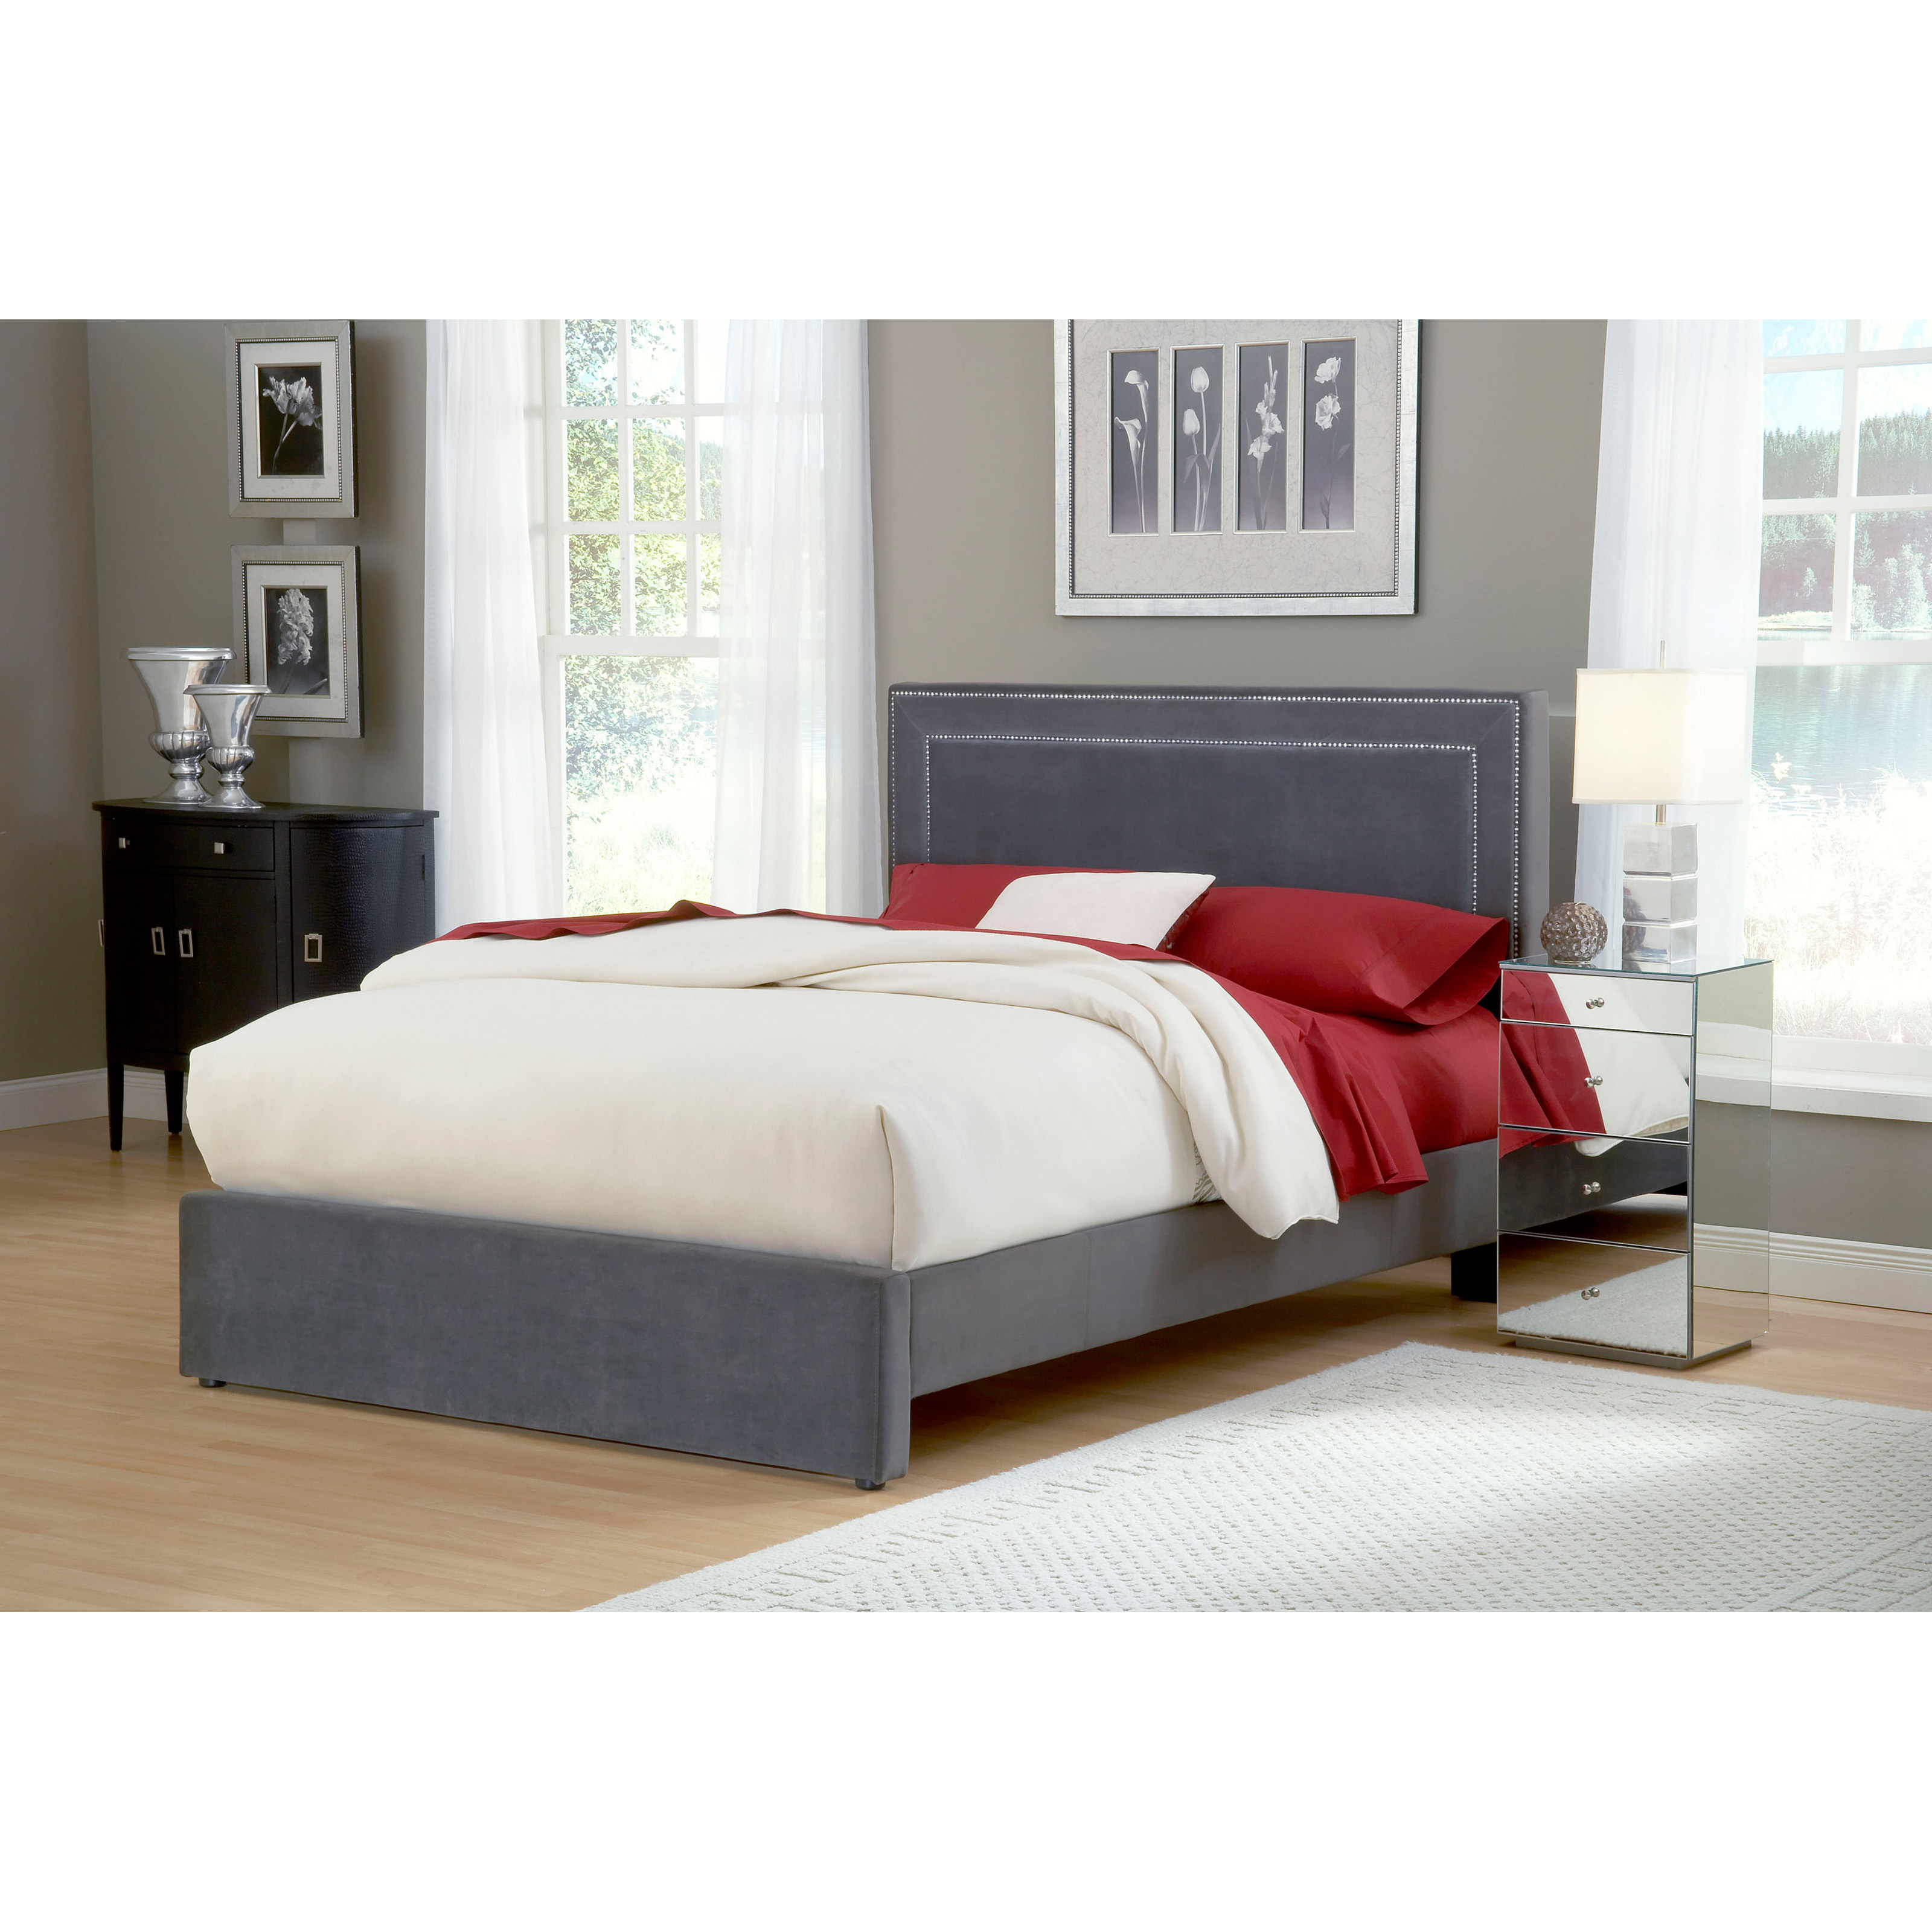 foam shipping set today gel free overstock product comforpedic king home garden memory size from beautyrest mattress inch